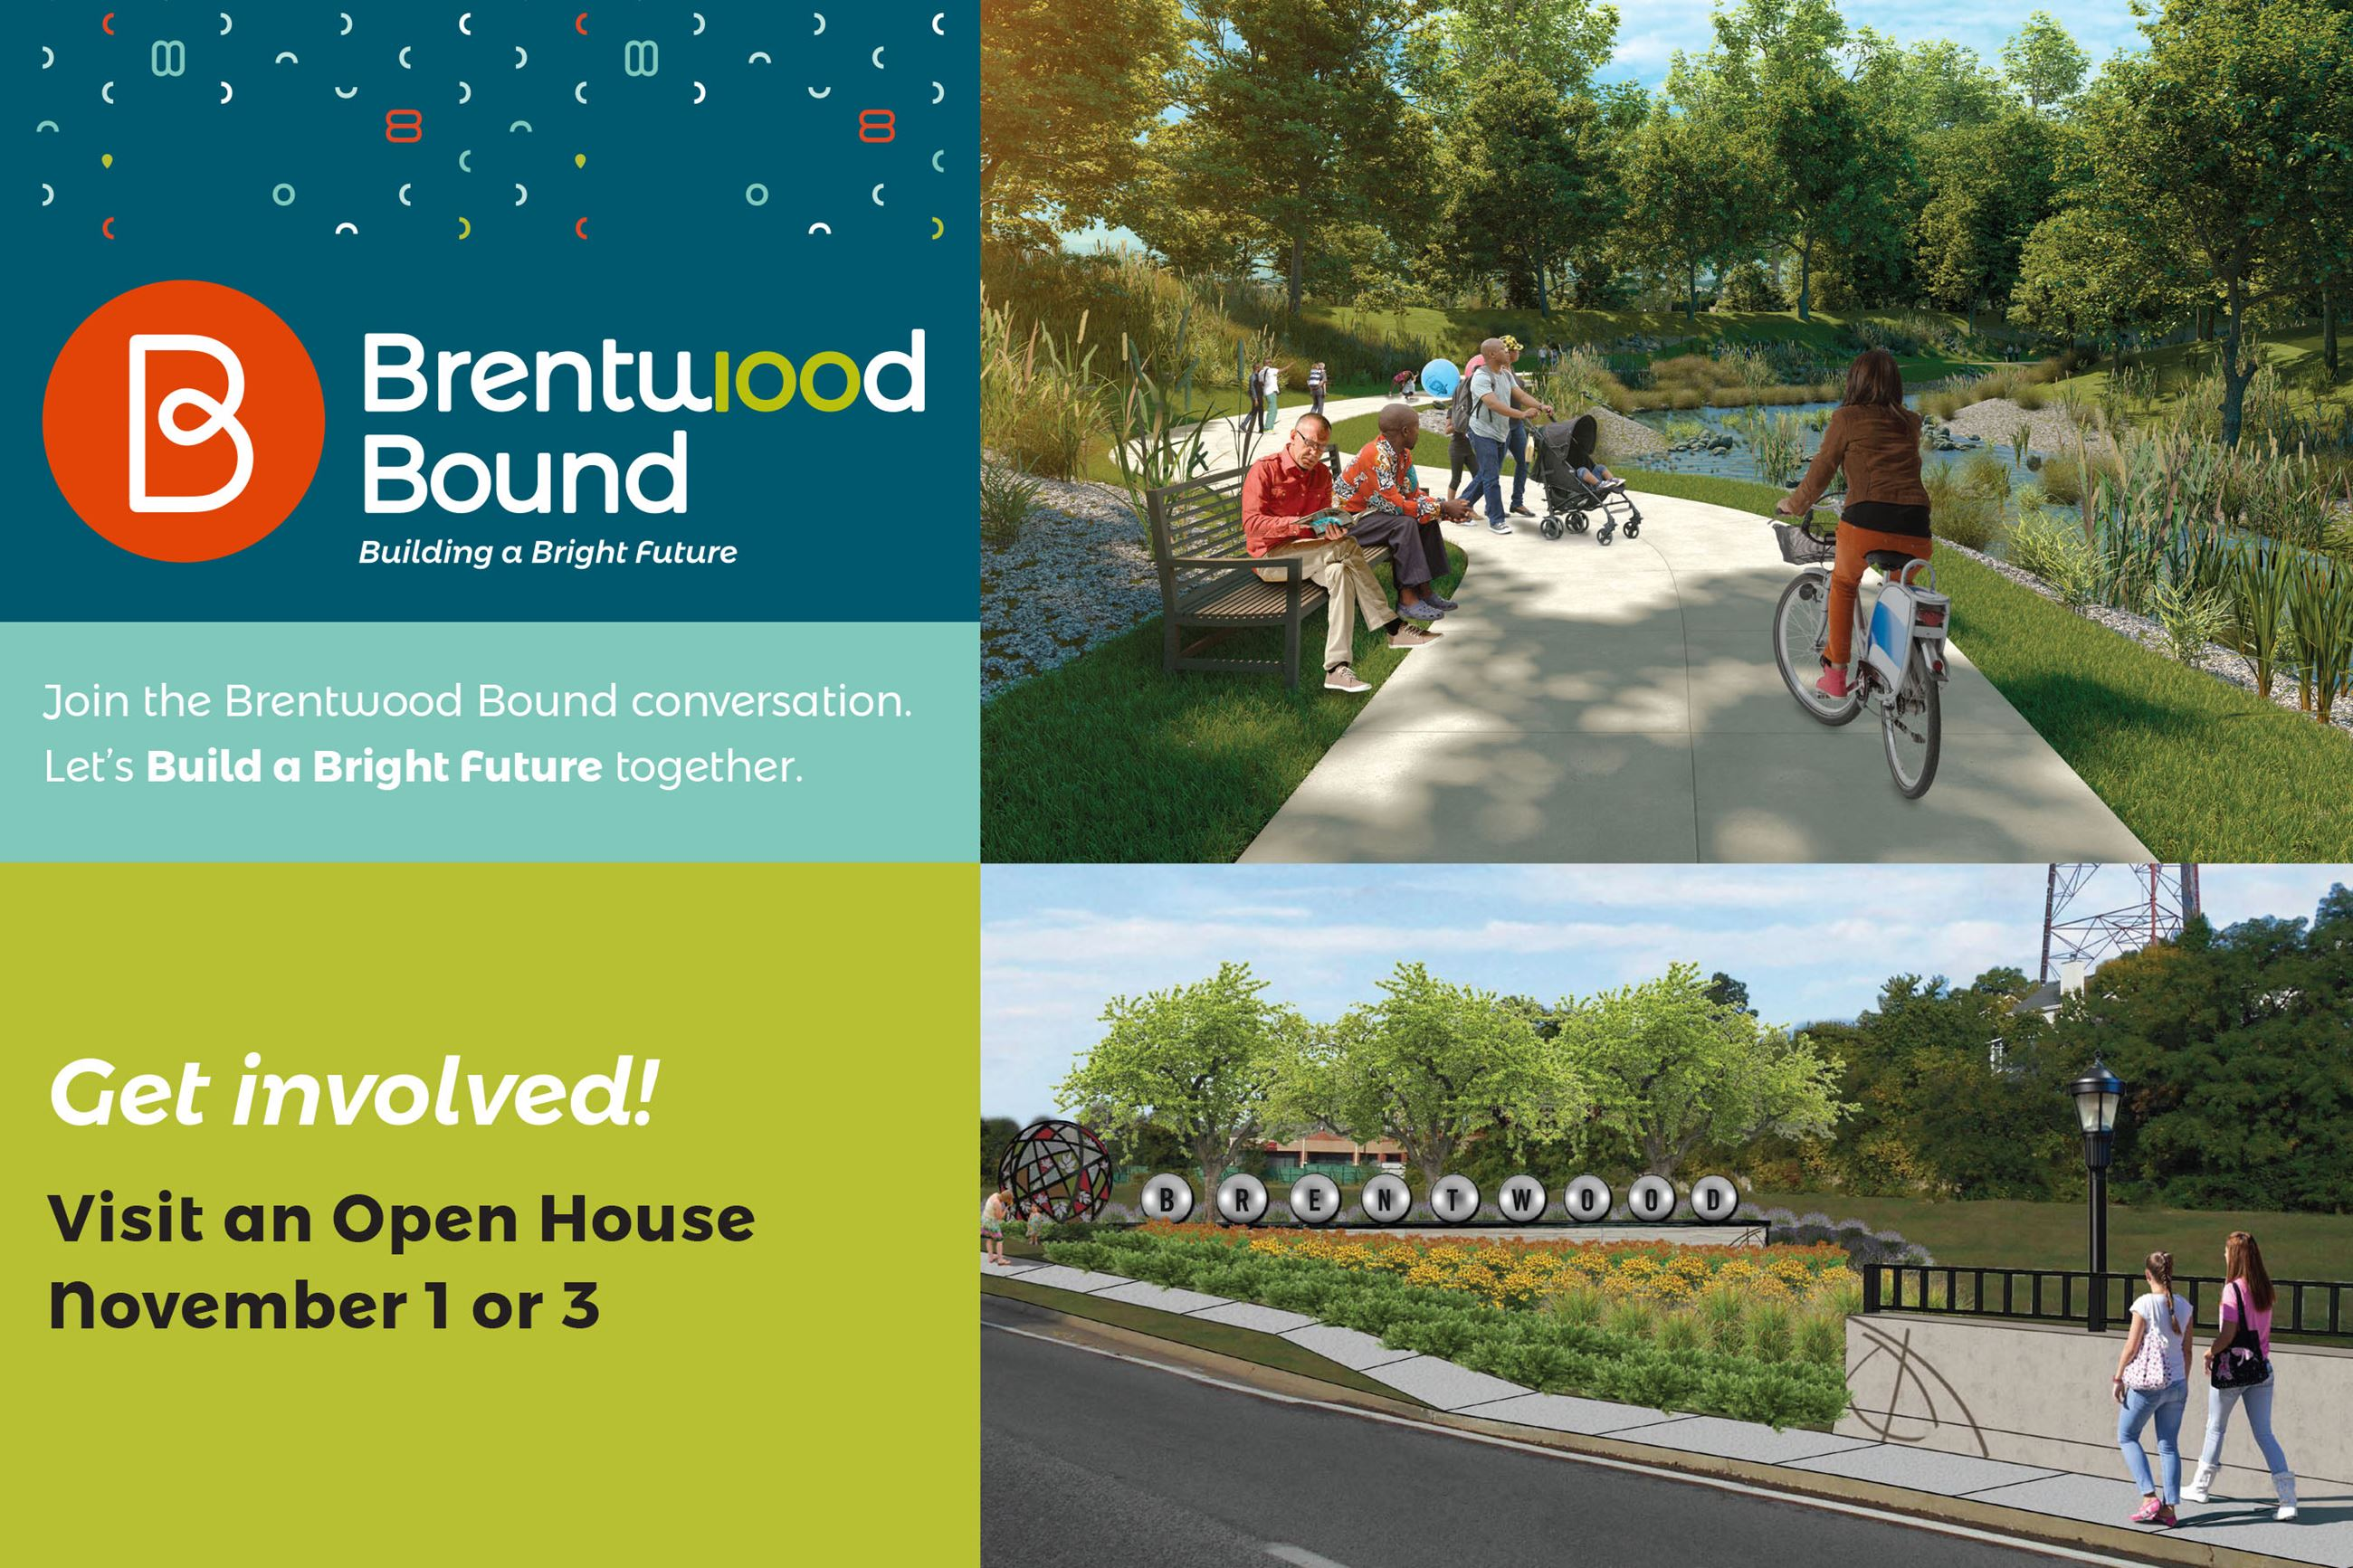 Brentwood Bound Open House Postcard